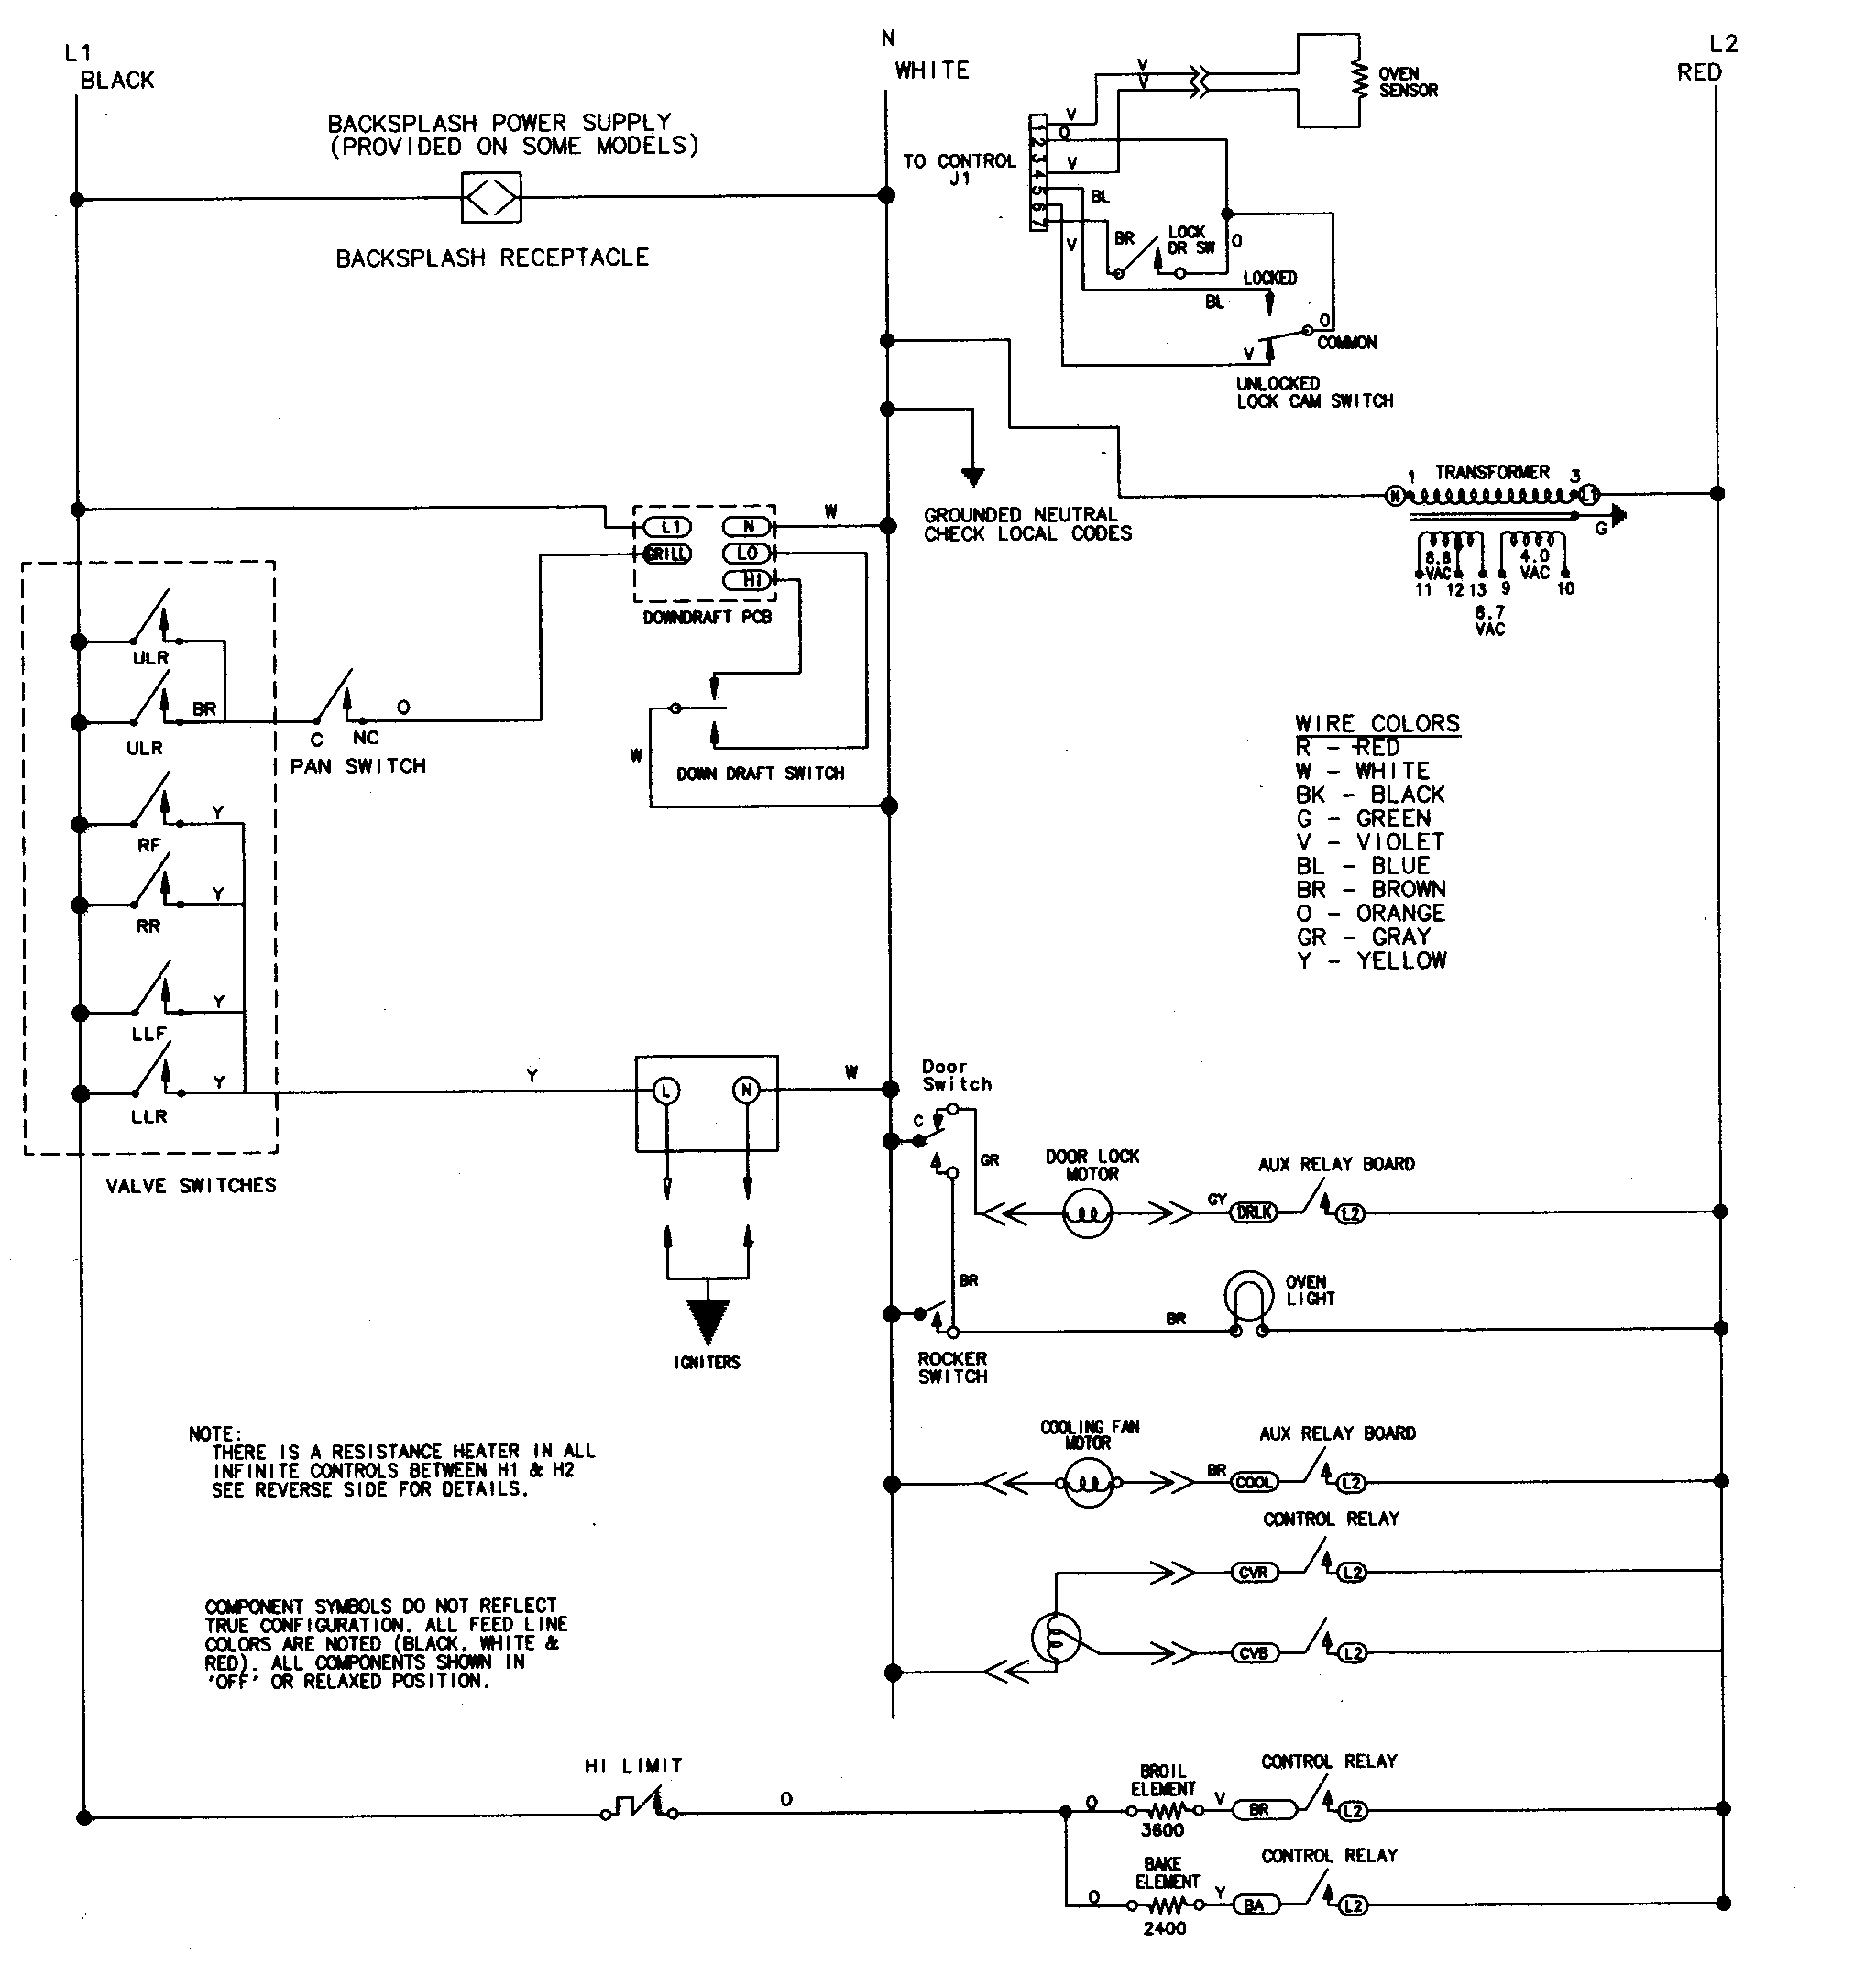 Home Air Conditioning Wiring Diagrams also Gas Heating Stove Diagram further Fan Motor Wiring Diagram For Fireplace moreover Oil Furnace Blower Switch also 219774673. on wood furnace blower replacement